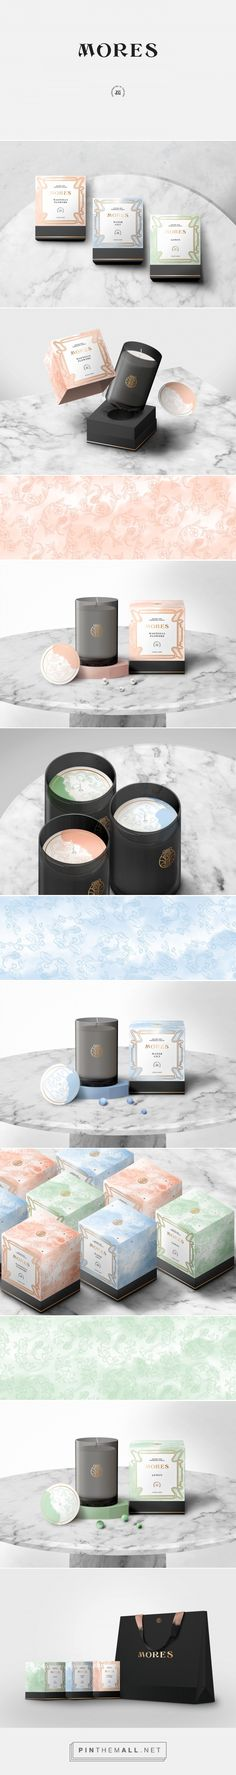 Mores Brand Signature Candle Packaging by Trin Oupkham | Fivestar Branding Agency – Design and Branding Agency & Curated Inspiration Gallery